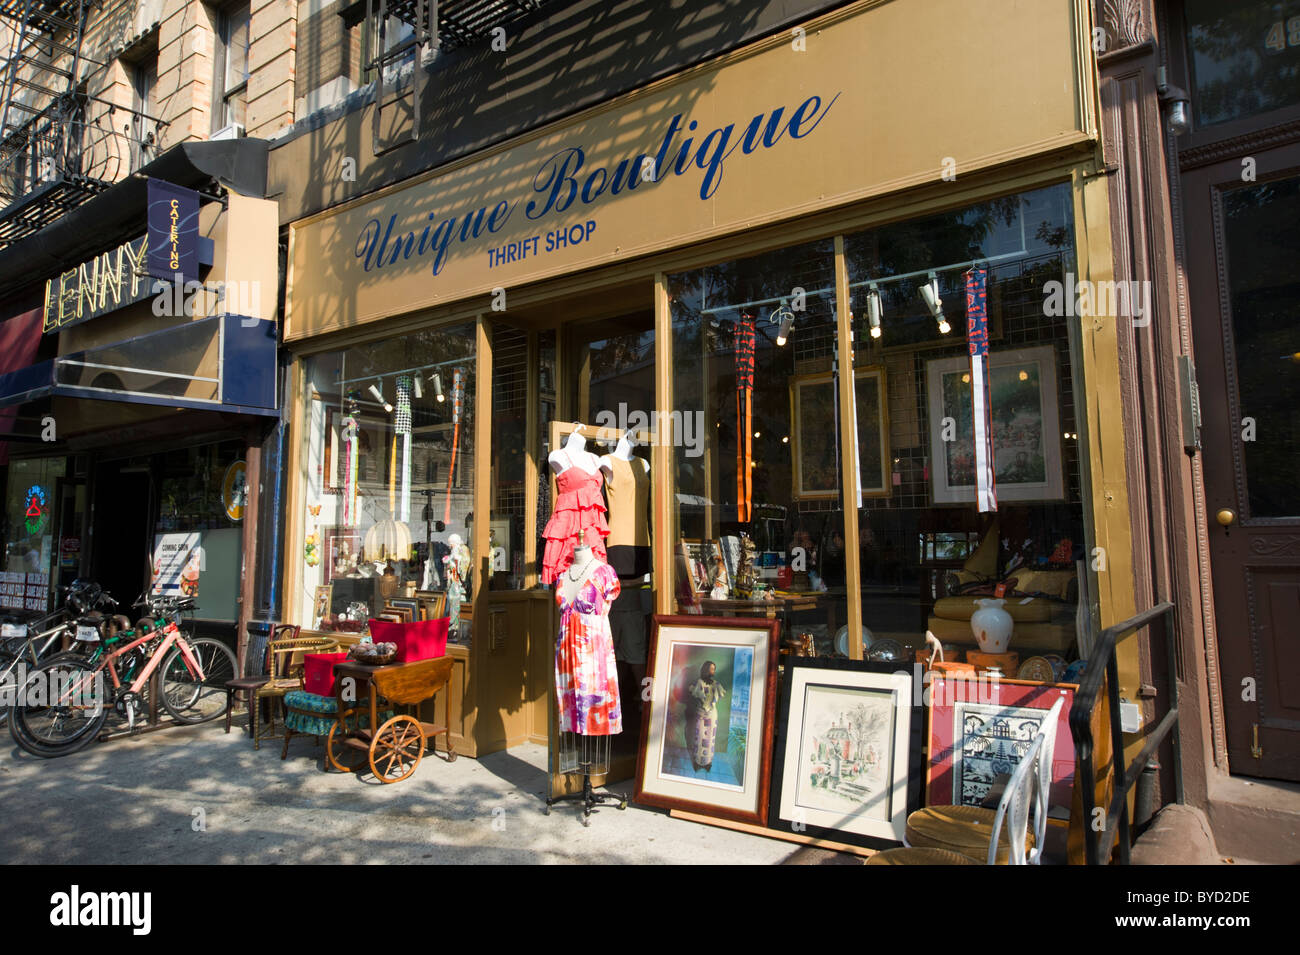 Thrift store on the Upper West Side, New York City, USA - Stock Image